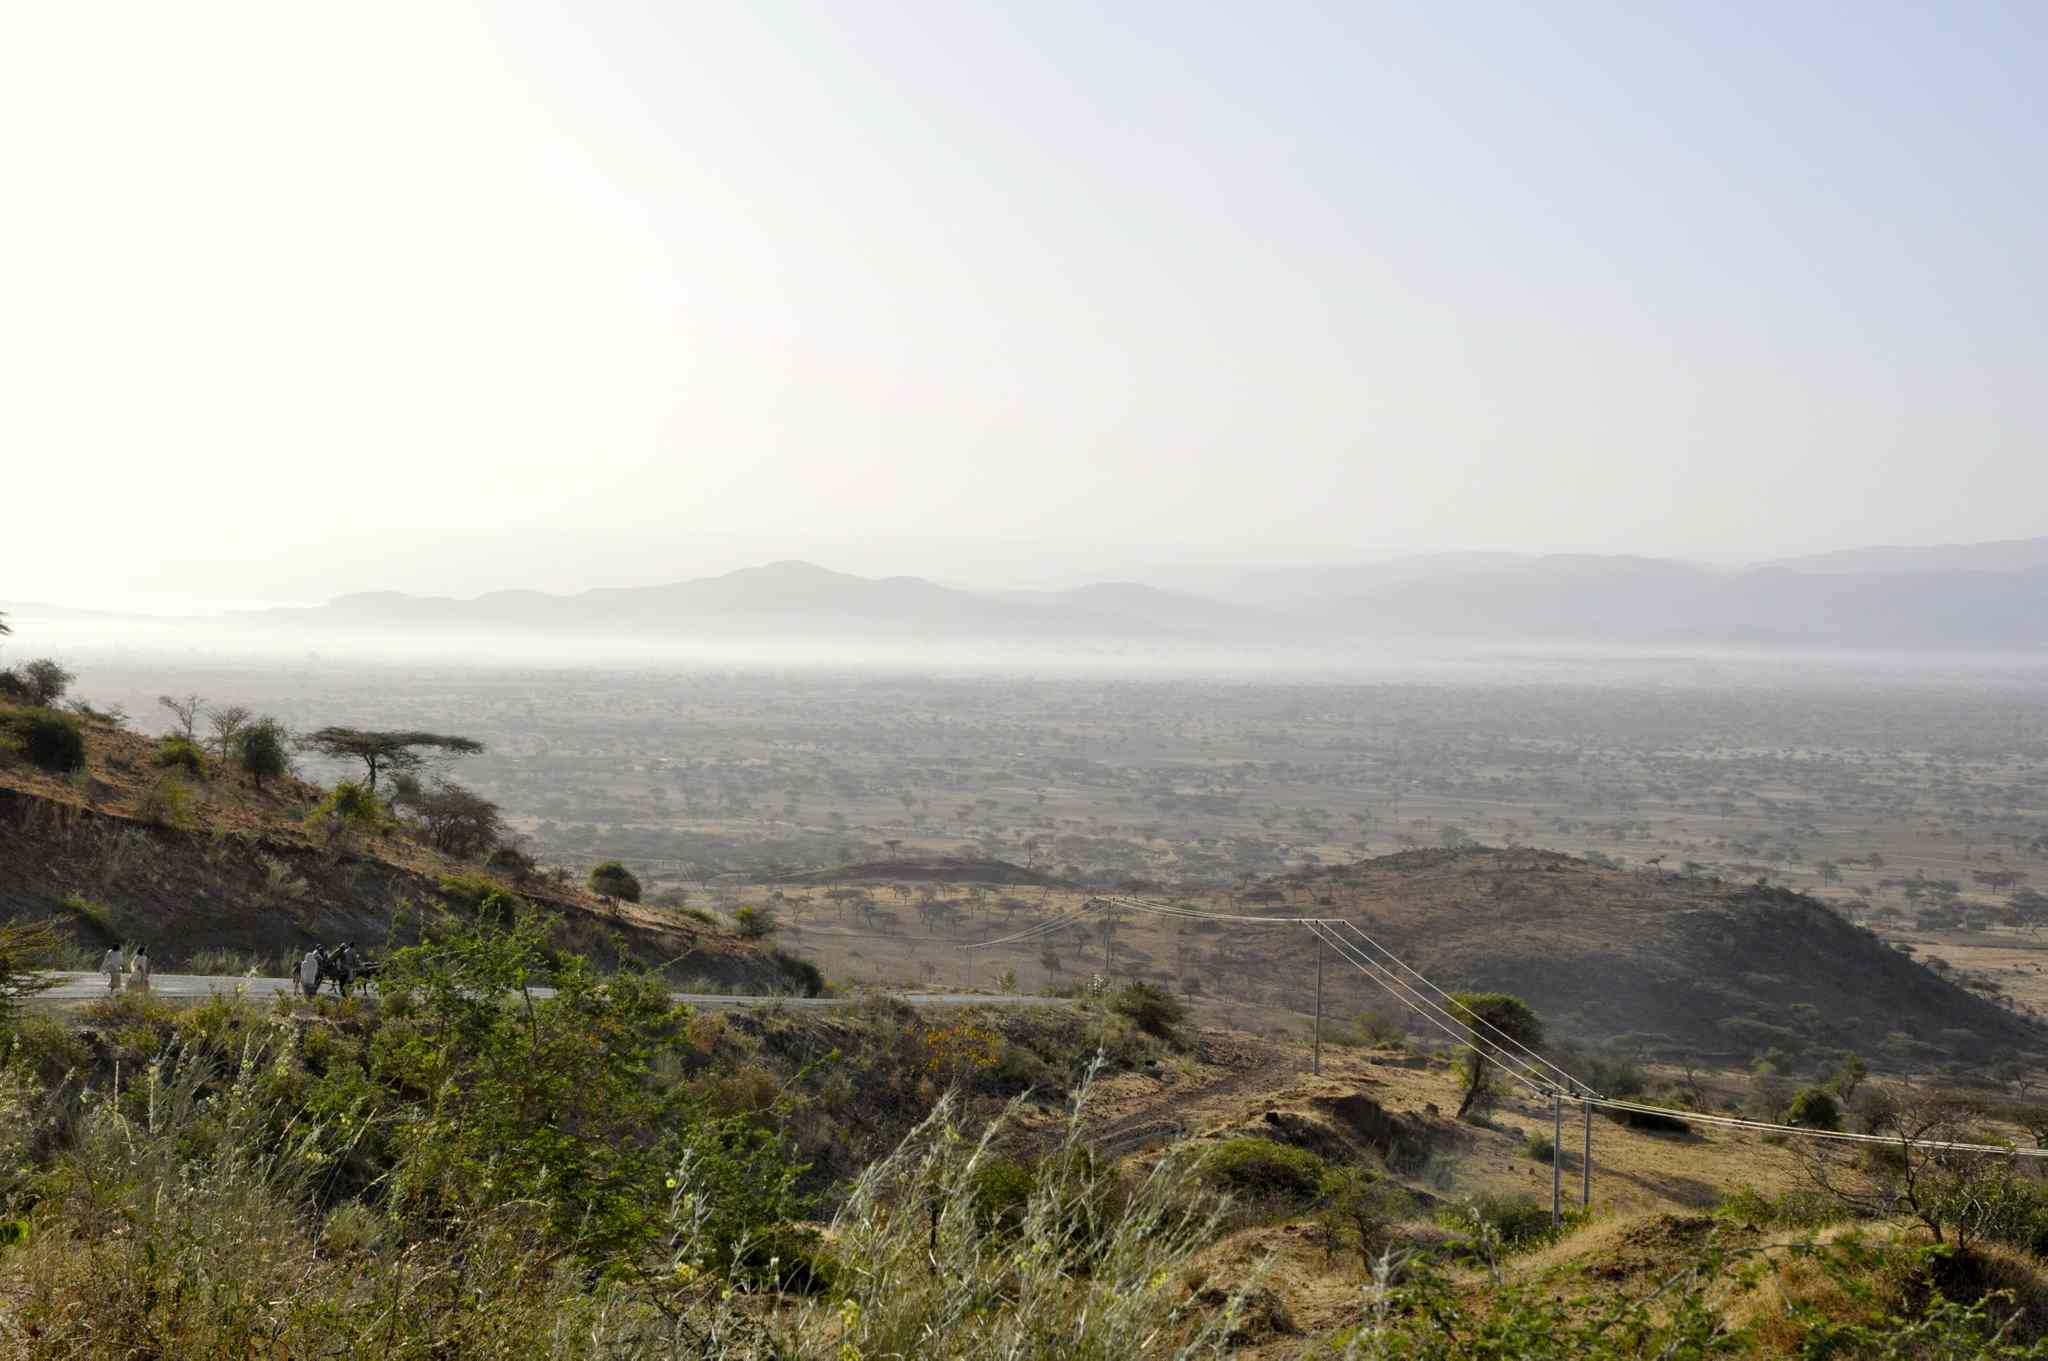 A dusty hazy, caused by eroded soils, hangs over the Great Rift Valley in southern Ethiopia.